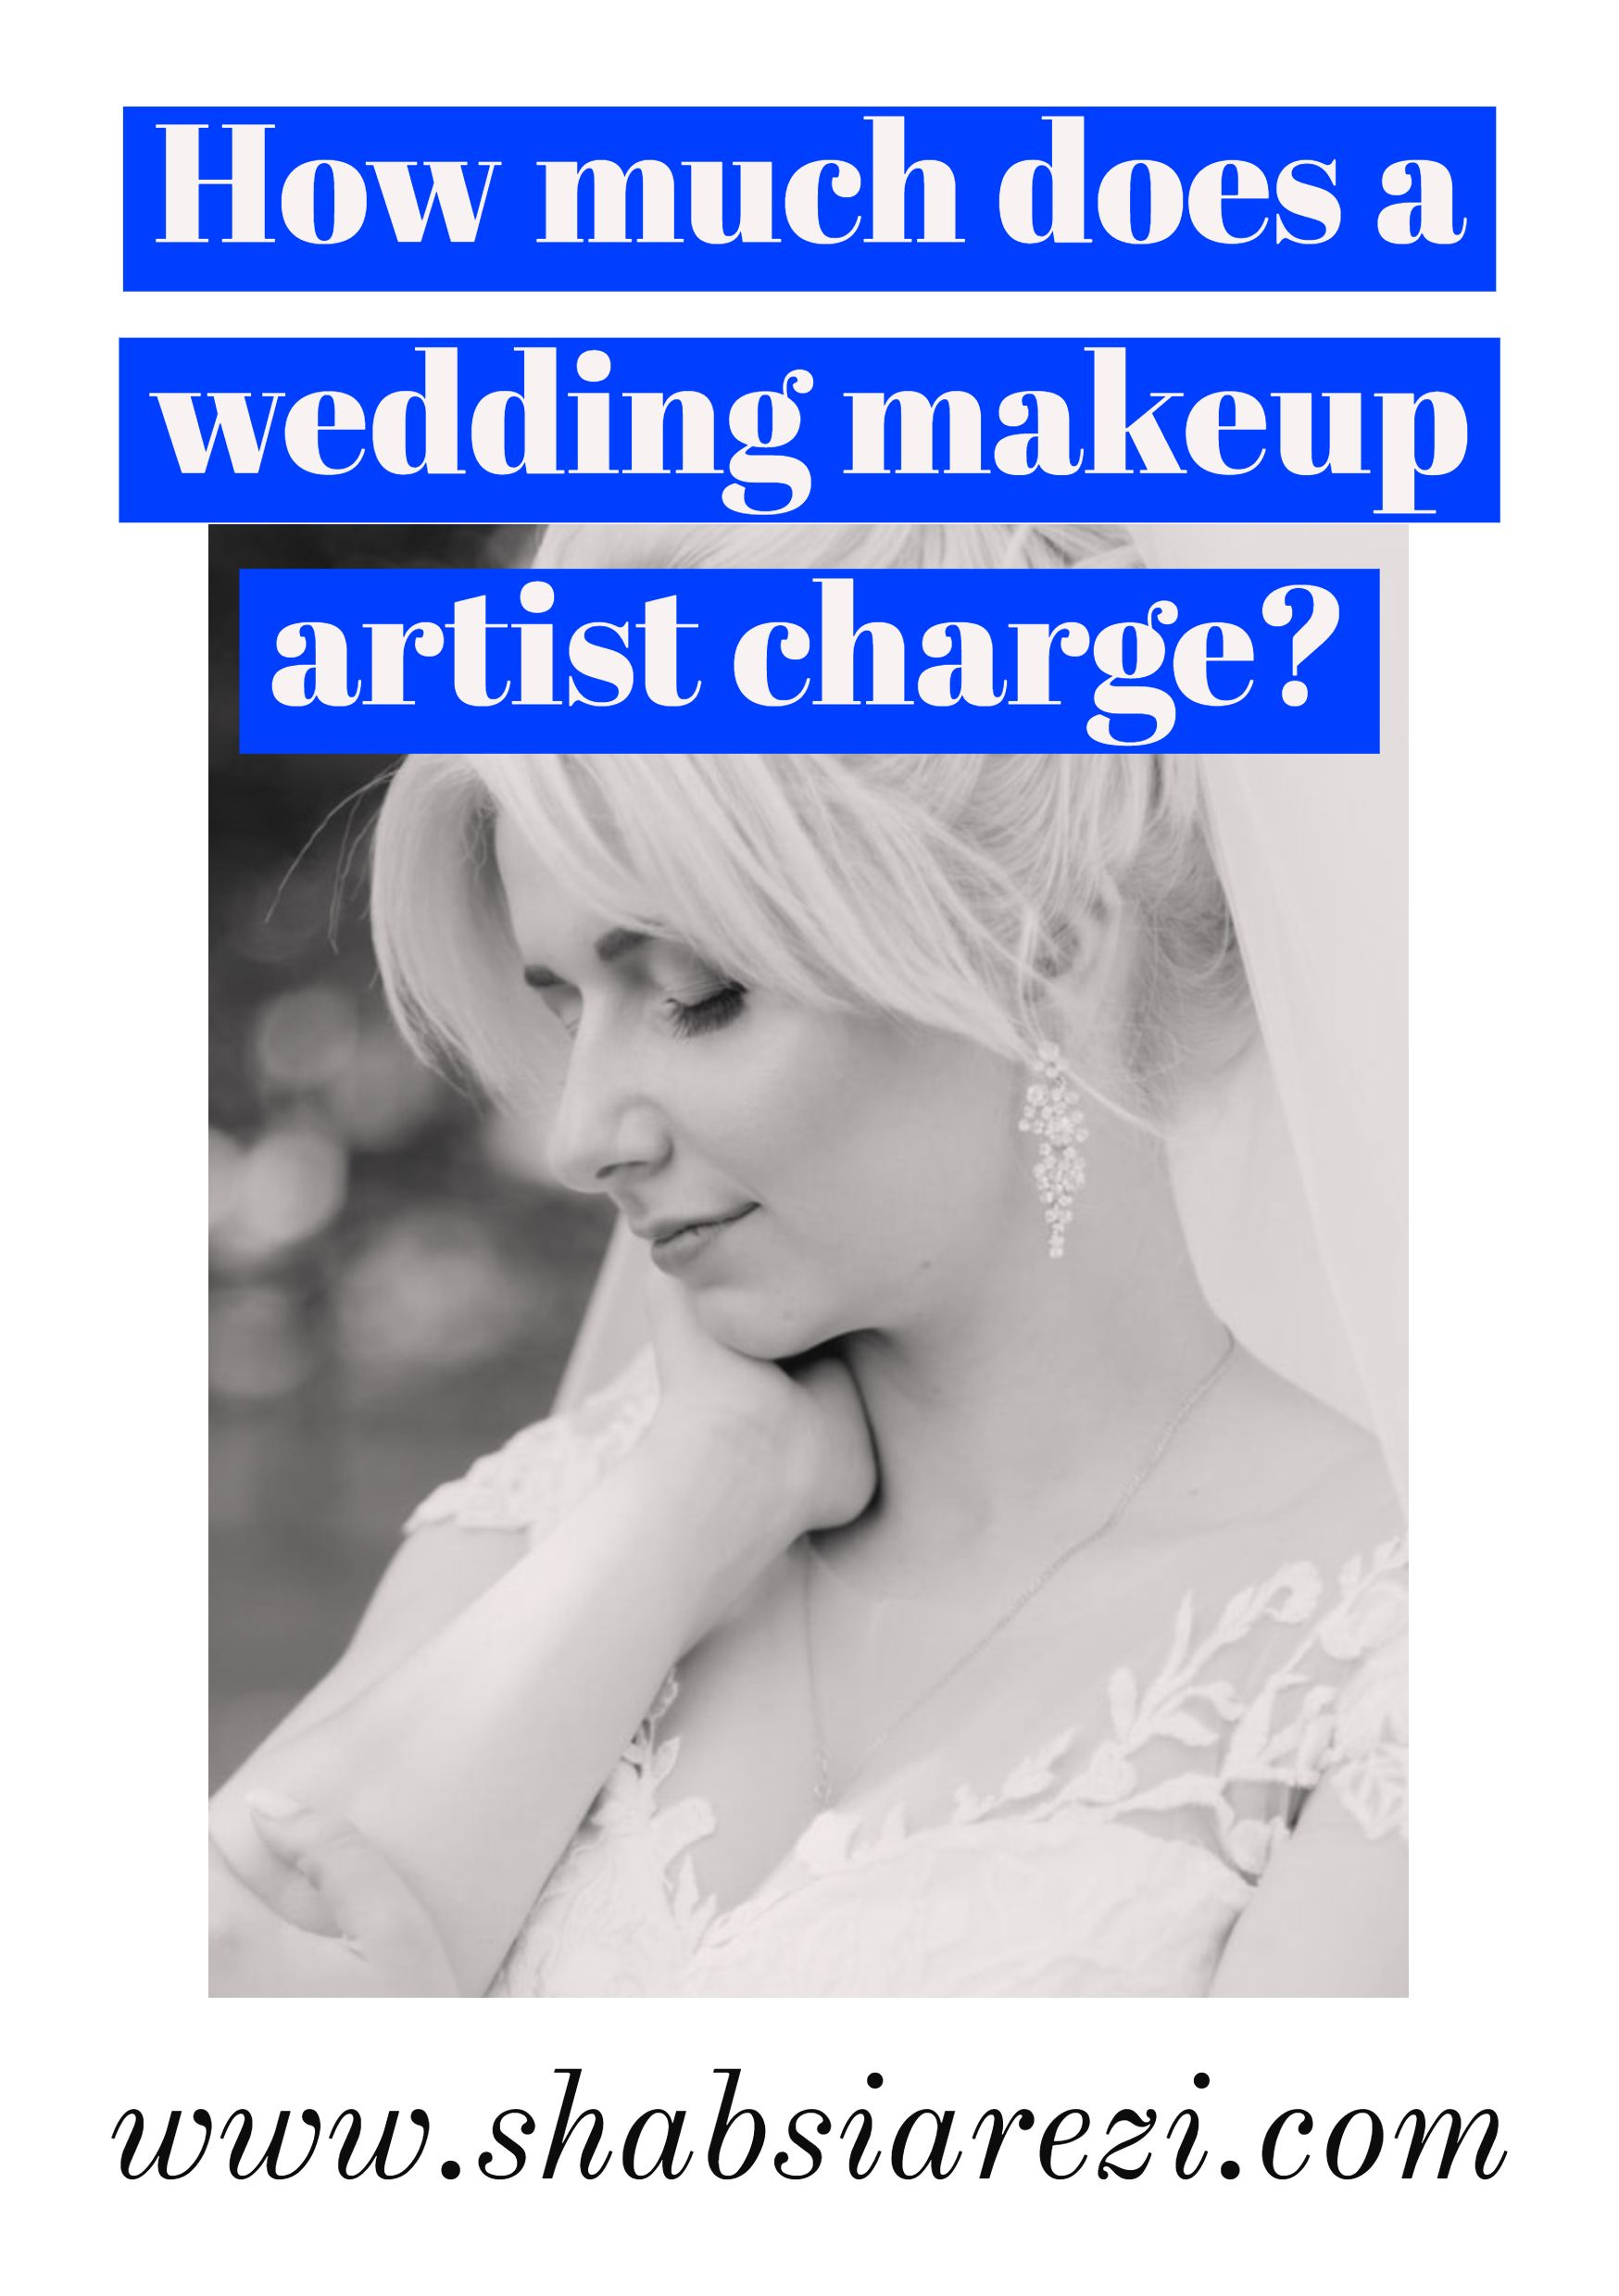 How much does a wedding makeup artist charge We provide a